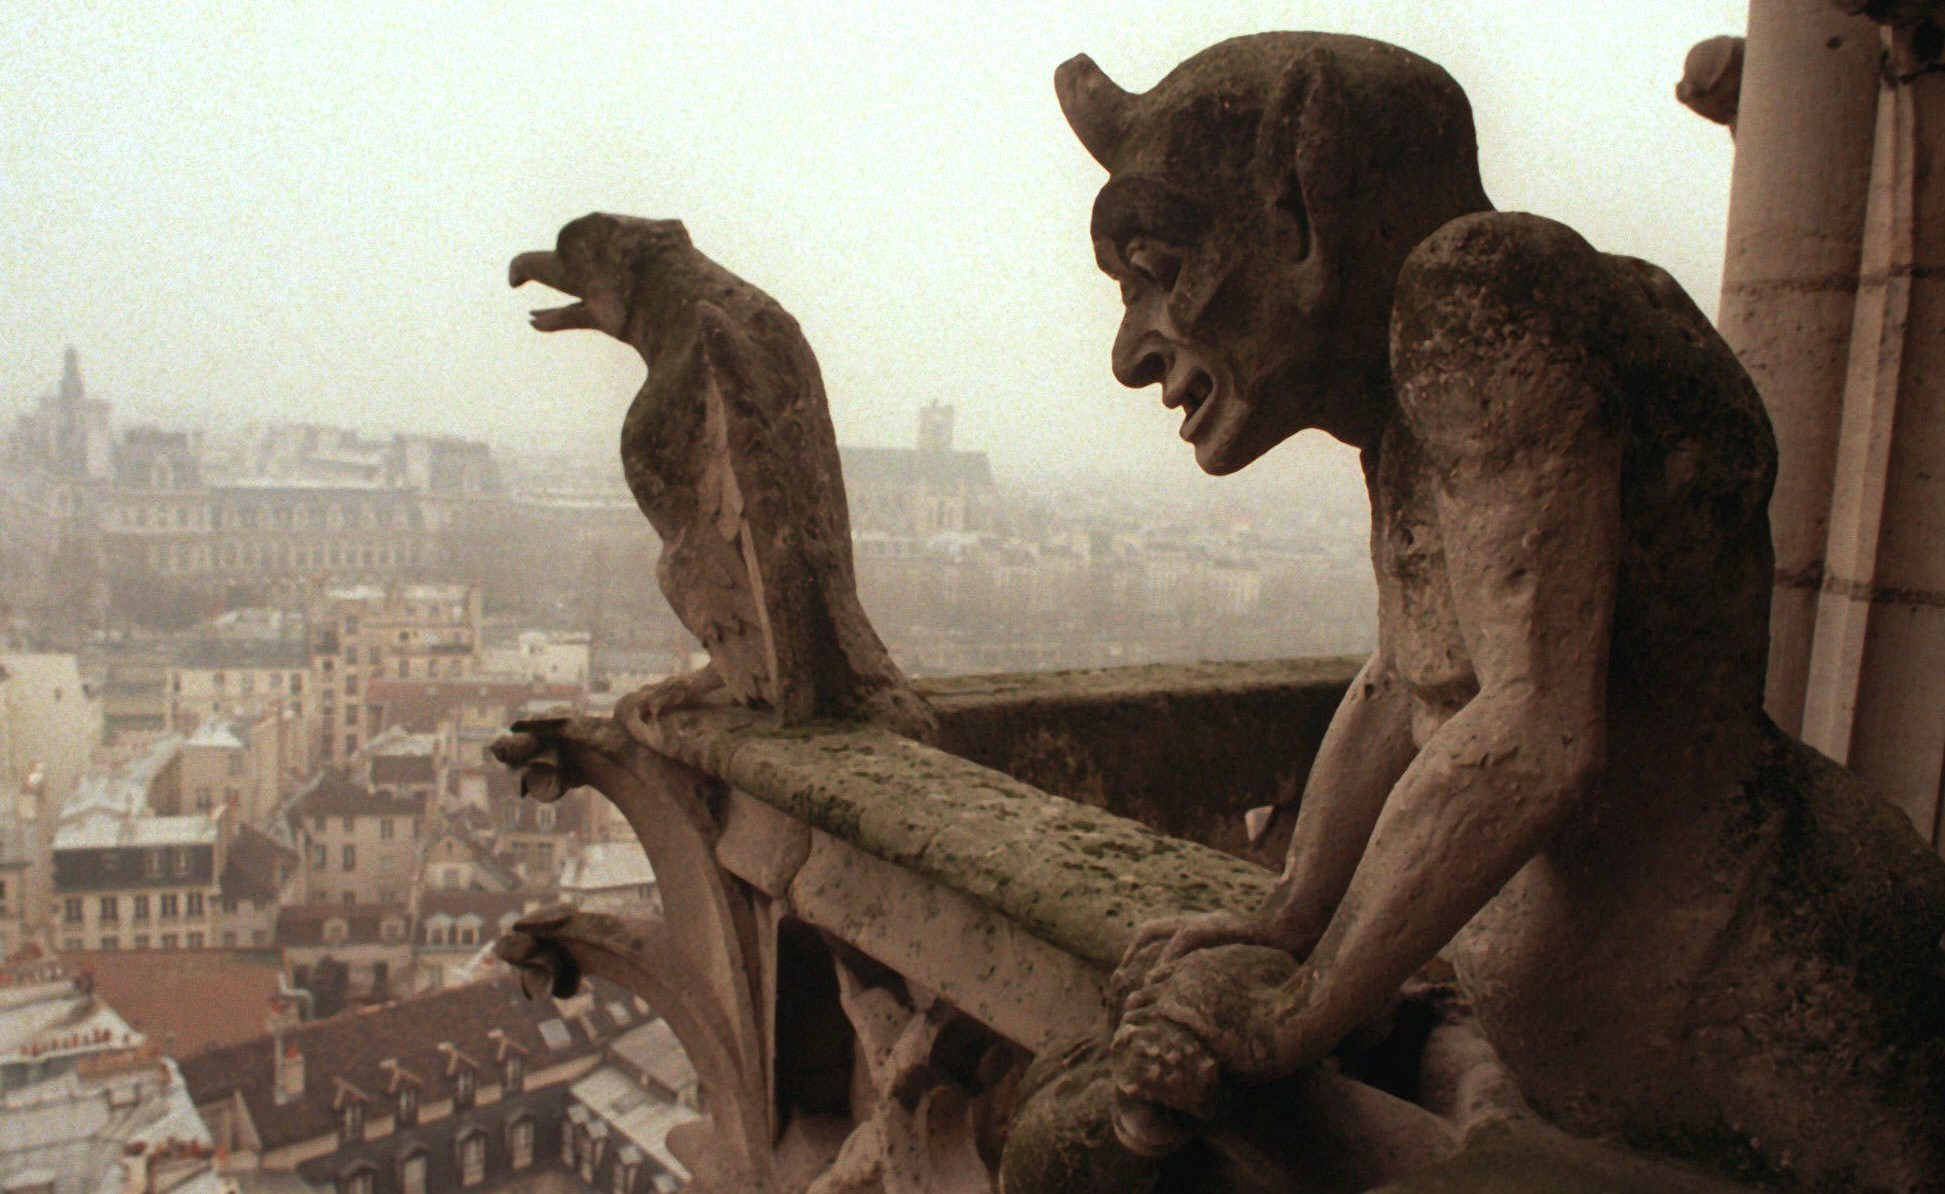 """Gargoyles watch over the streets of Paris from the top of the 11th century Notre Dame cathedral, Friday Jan 10, 1997. Notre Dame and its gargoyles are one of the typical features of medieval Paris pictured in Walt Disney's """" Hunchback of Notre Dame"""", France's second-most popular film behind 1996's other mega hit, """"Independence Day"""". (AP Photo/Remy de la Mauviniere)"""